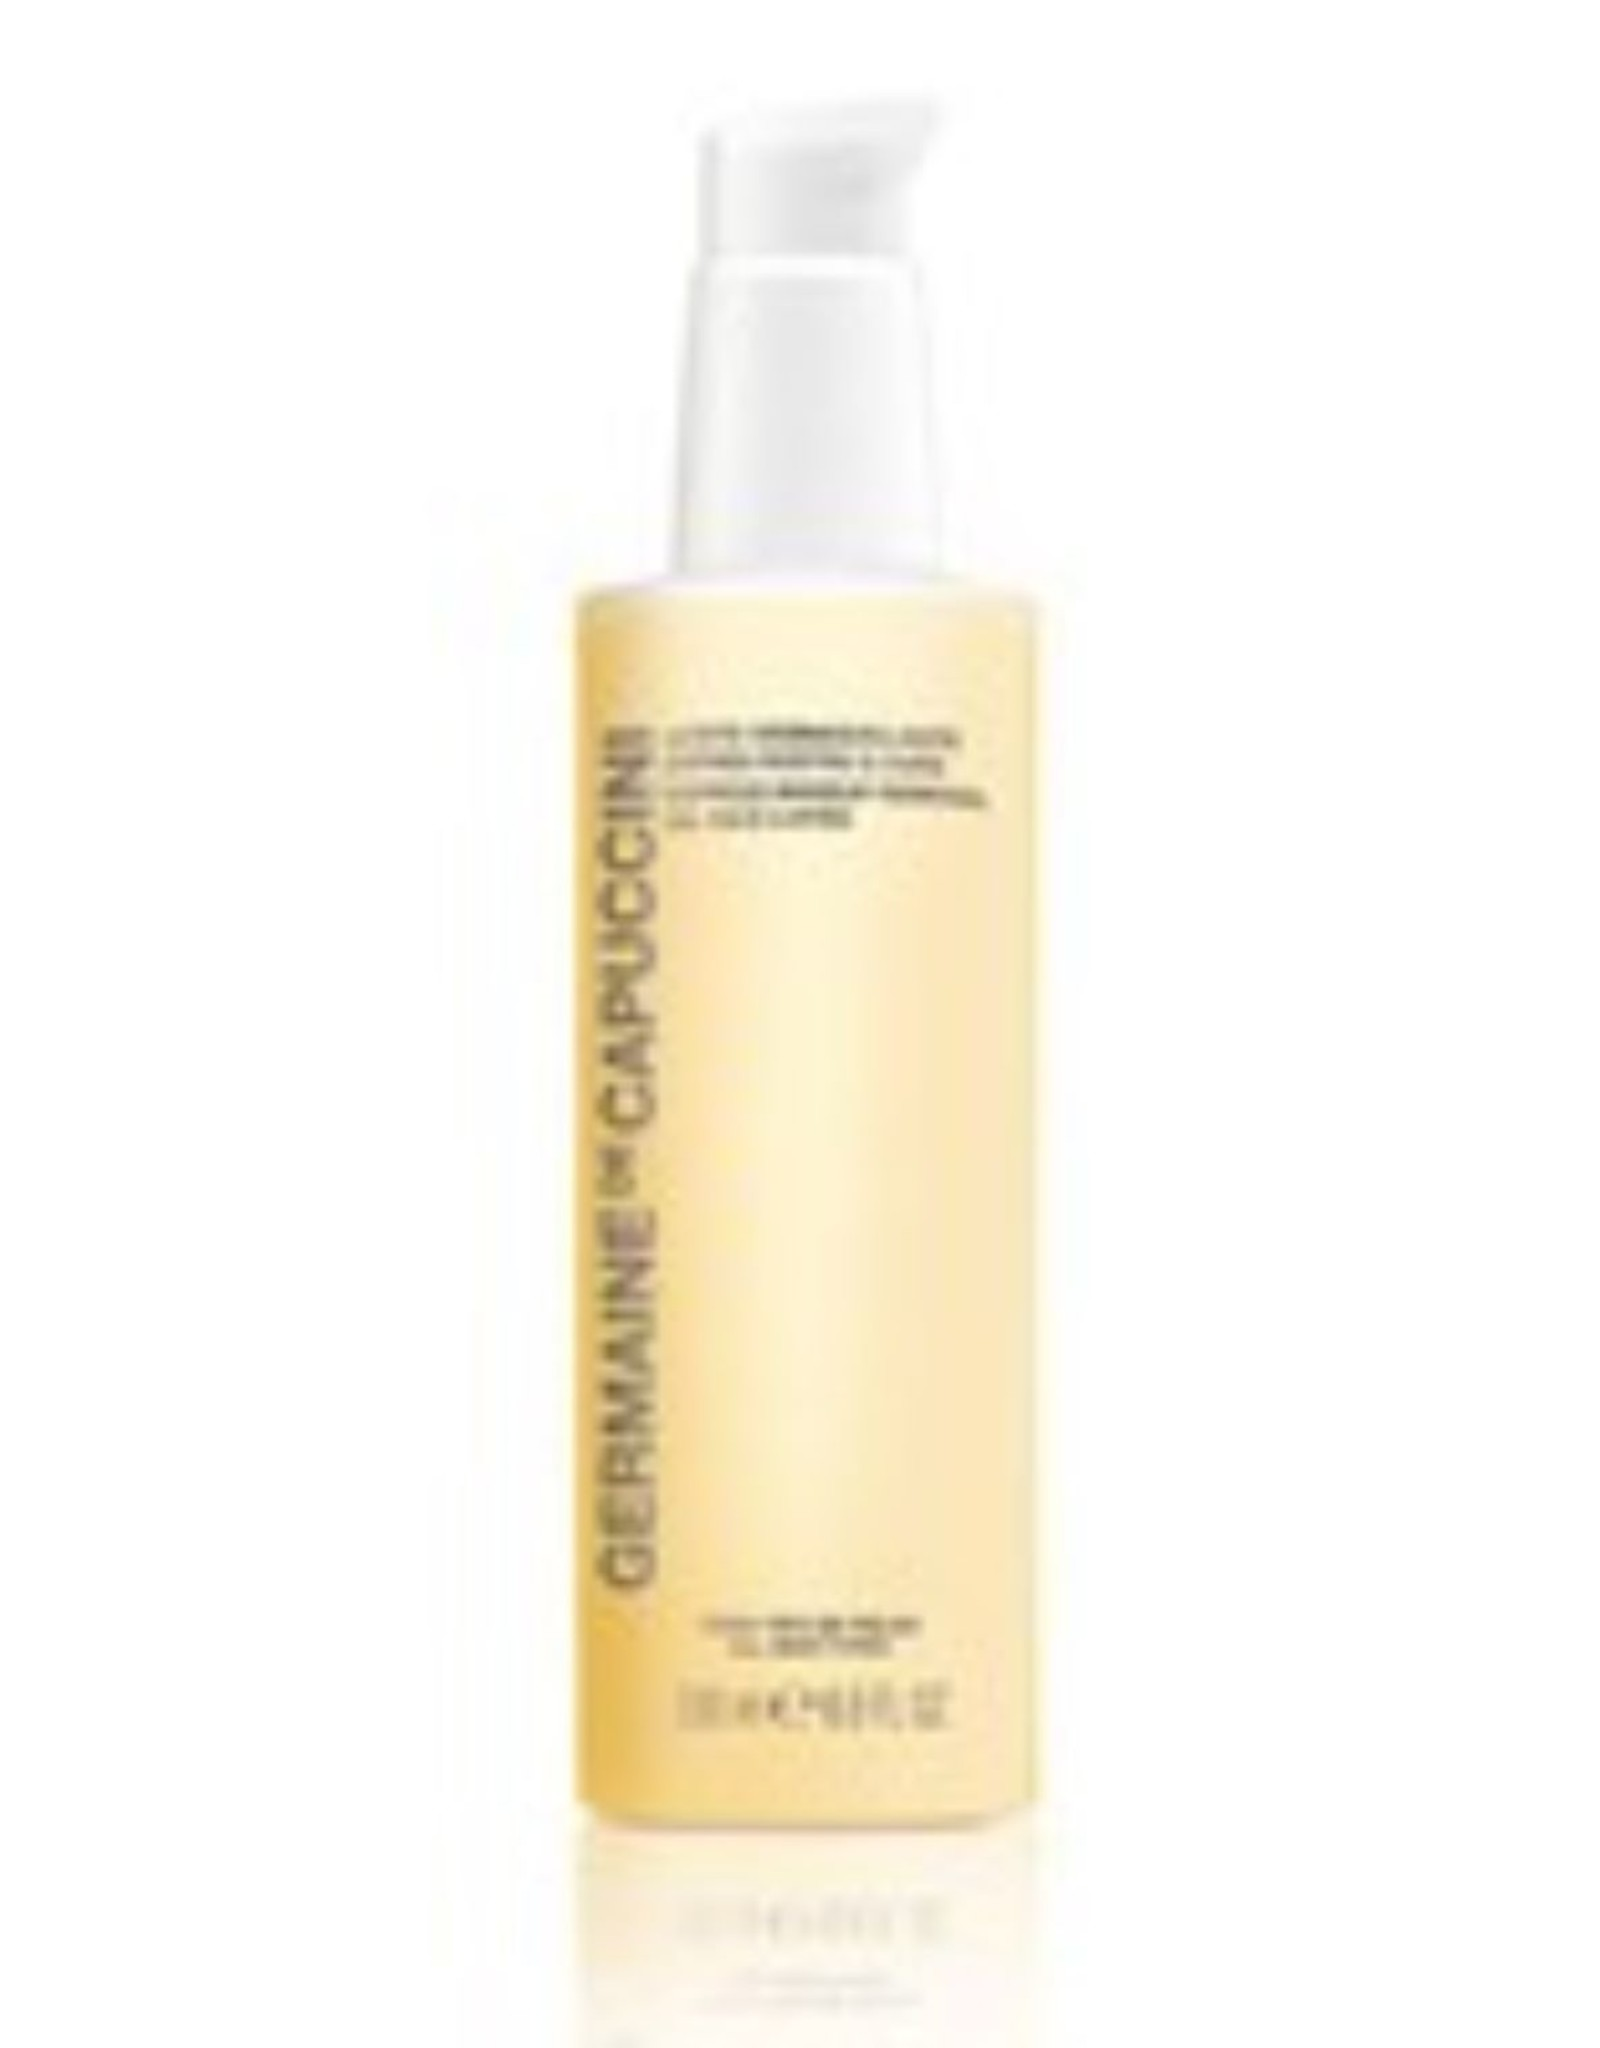 Express Make-Up Removal Oil - Face & Eyes